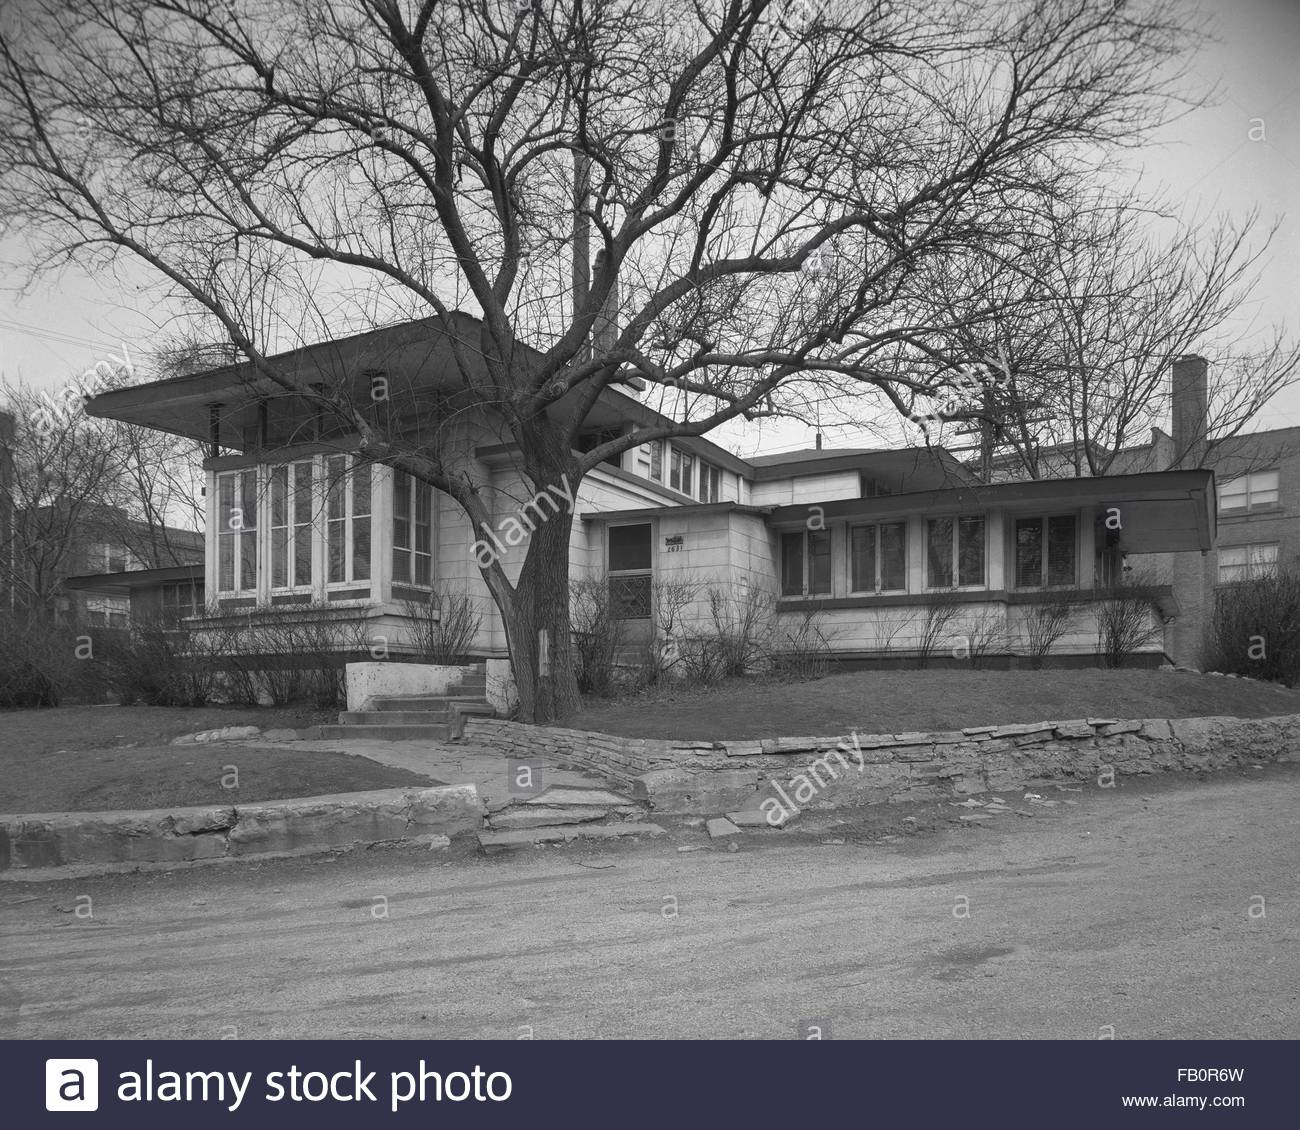 Oscar Steffens residence in Chicago (Ill.), 1963. Front angled view of house from the street. - Stock Image